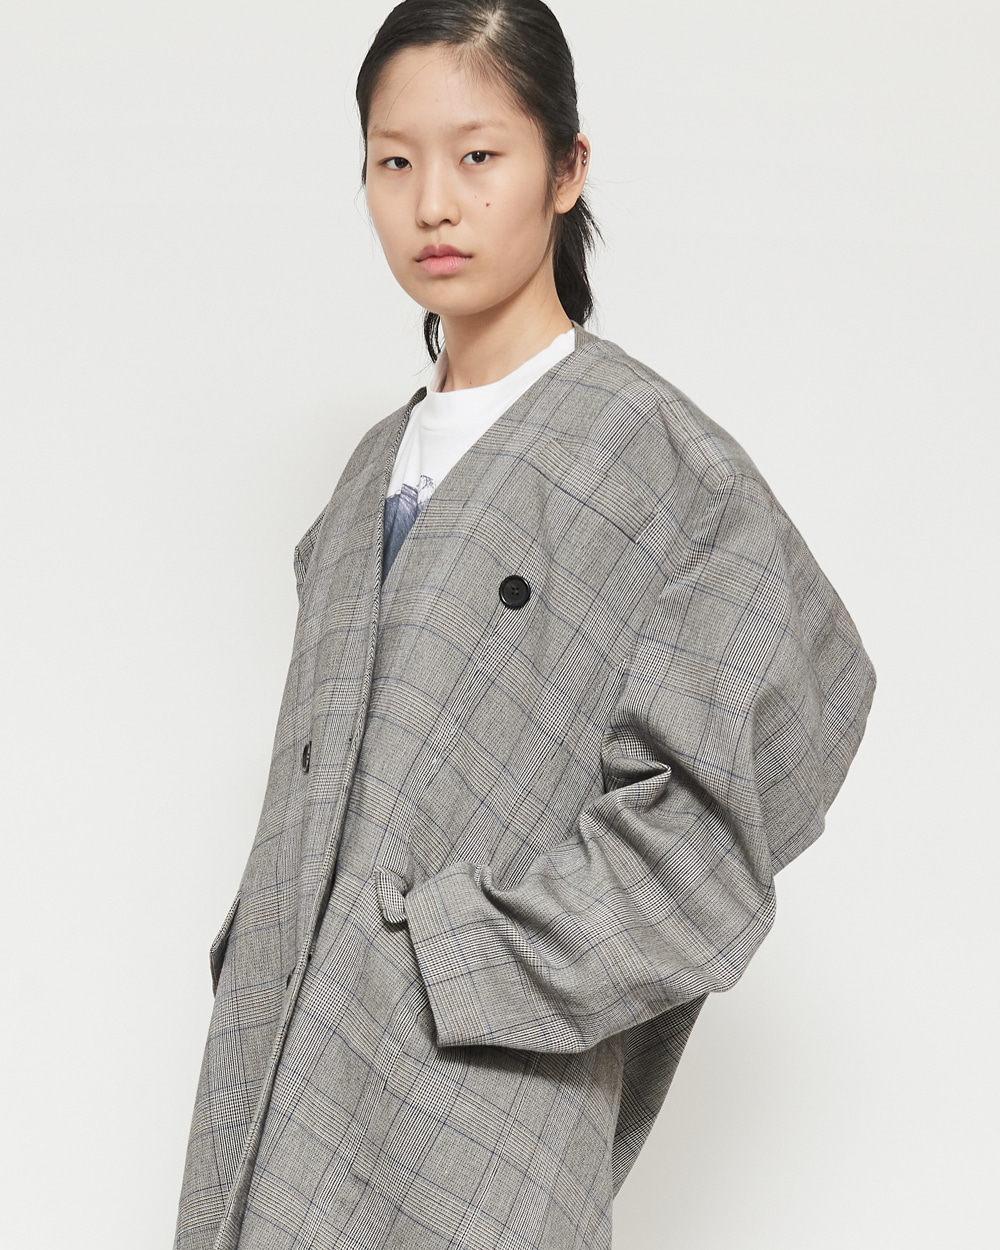 SS19 BOX SHOULDER COAT